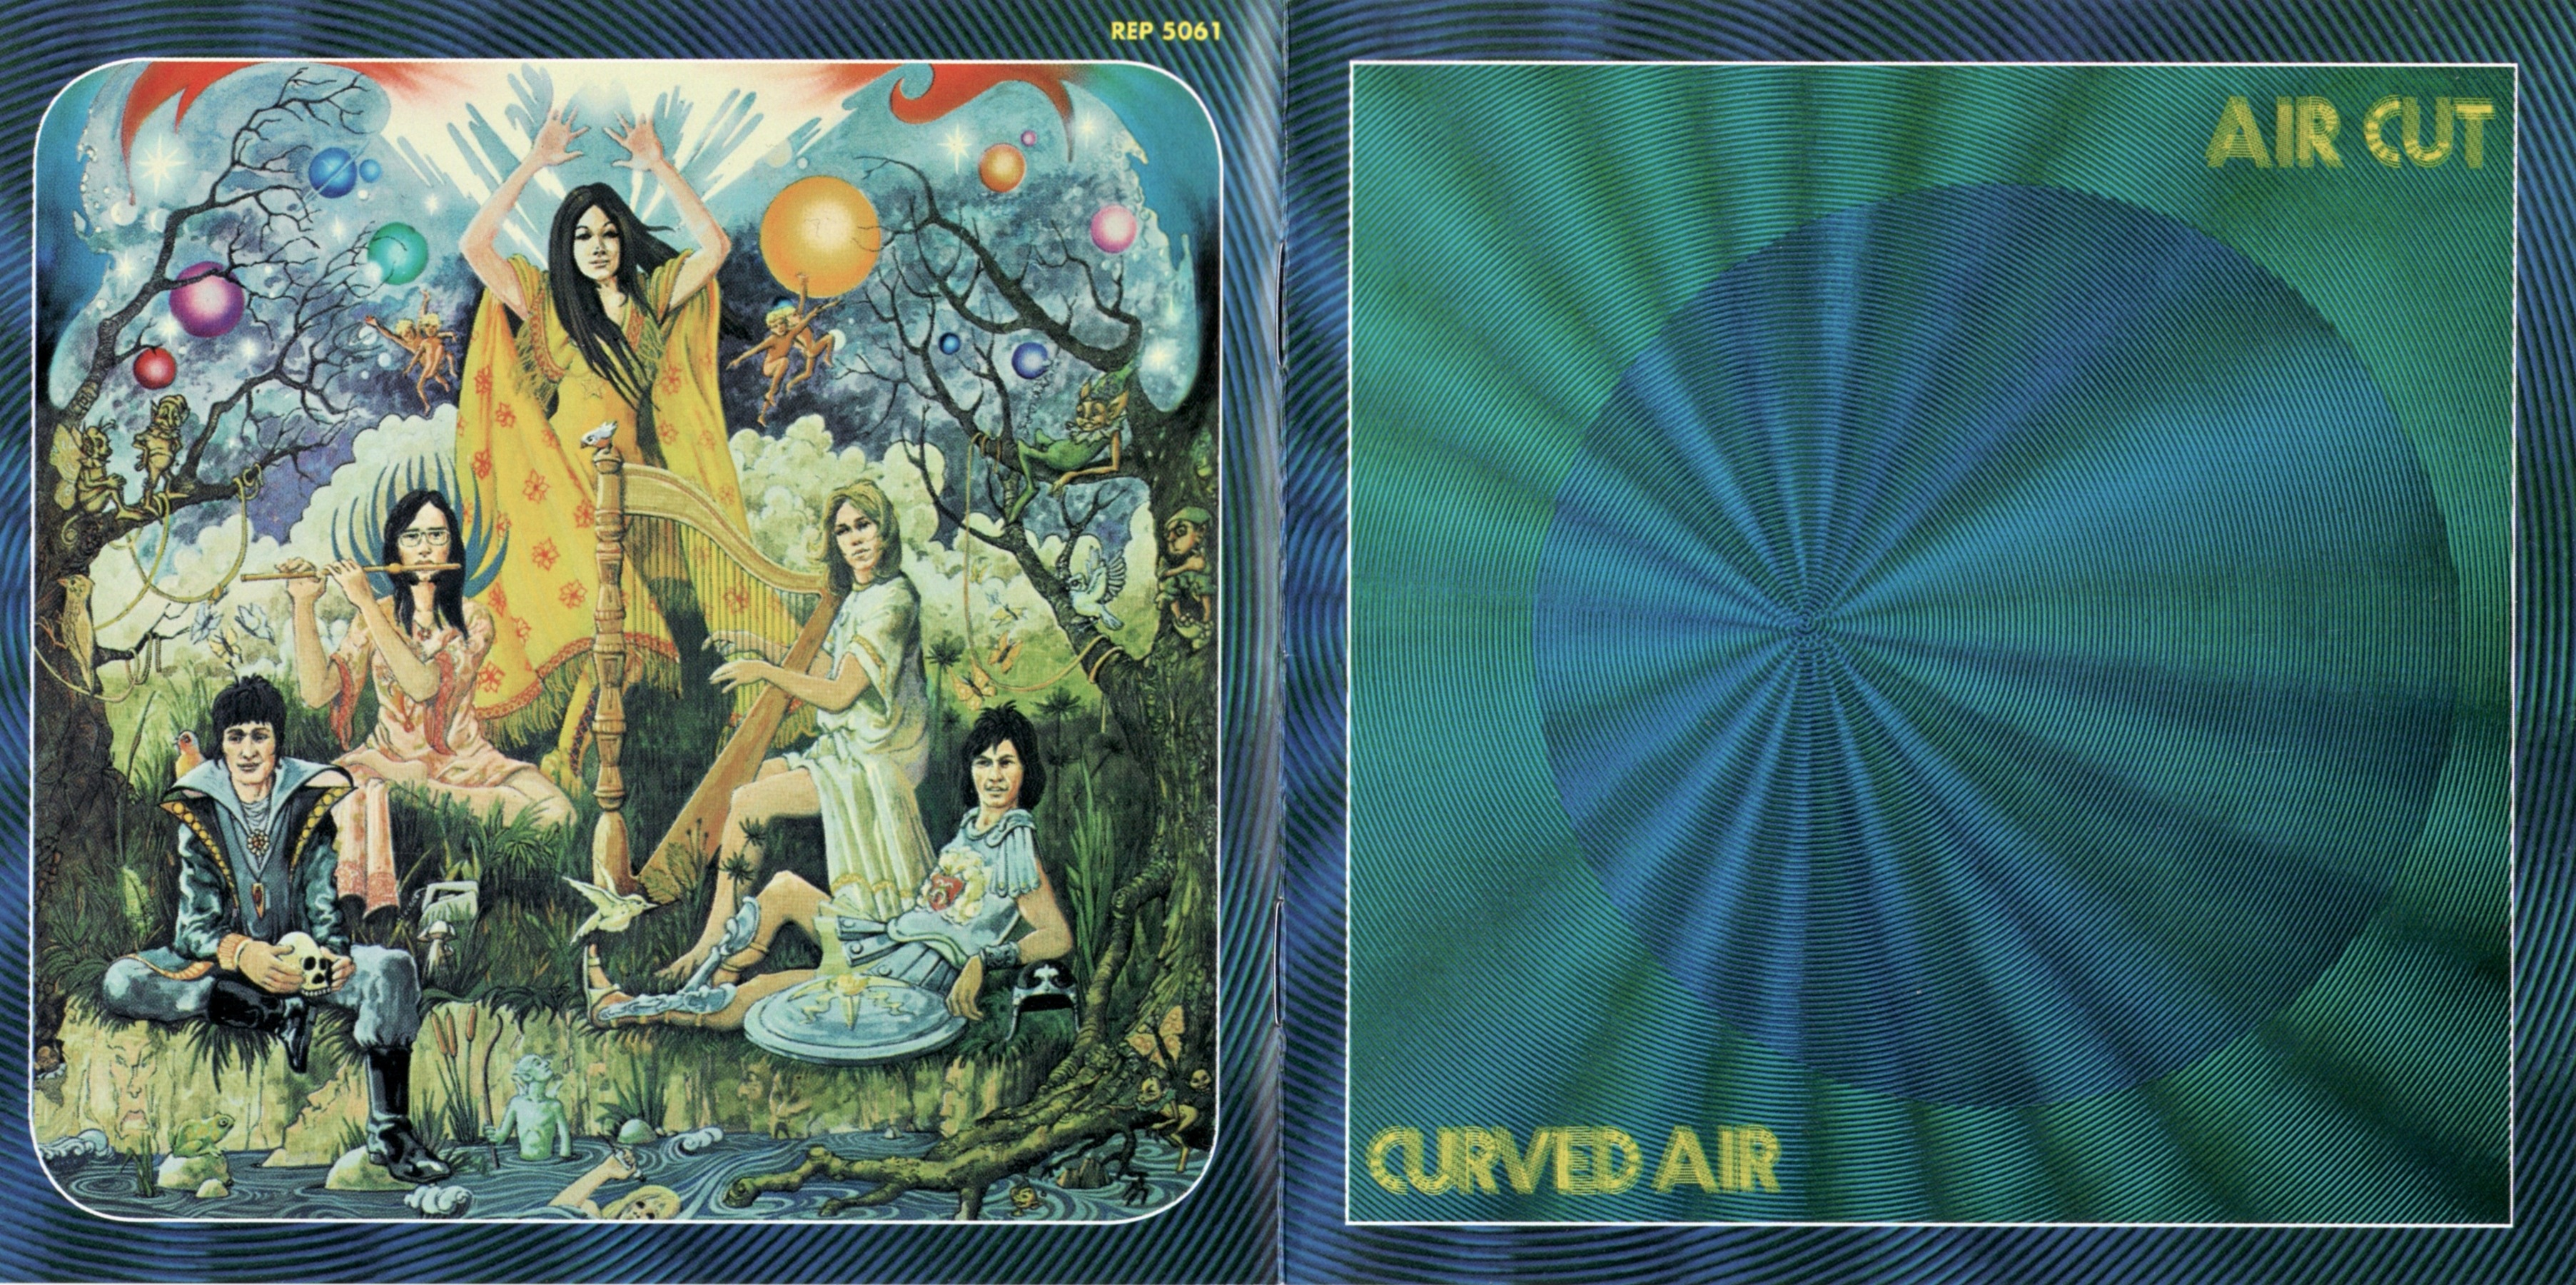 Curved Air - Metamorphosis